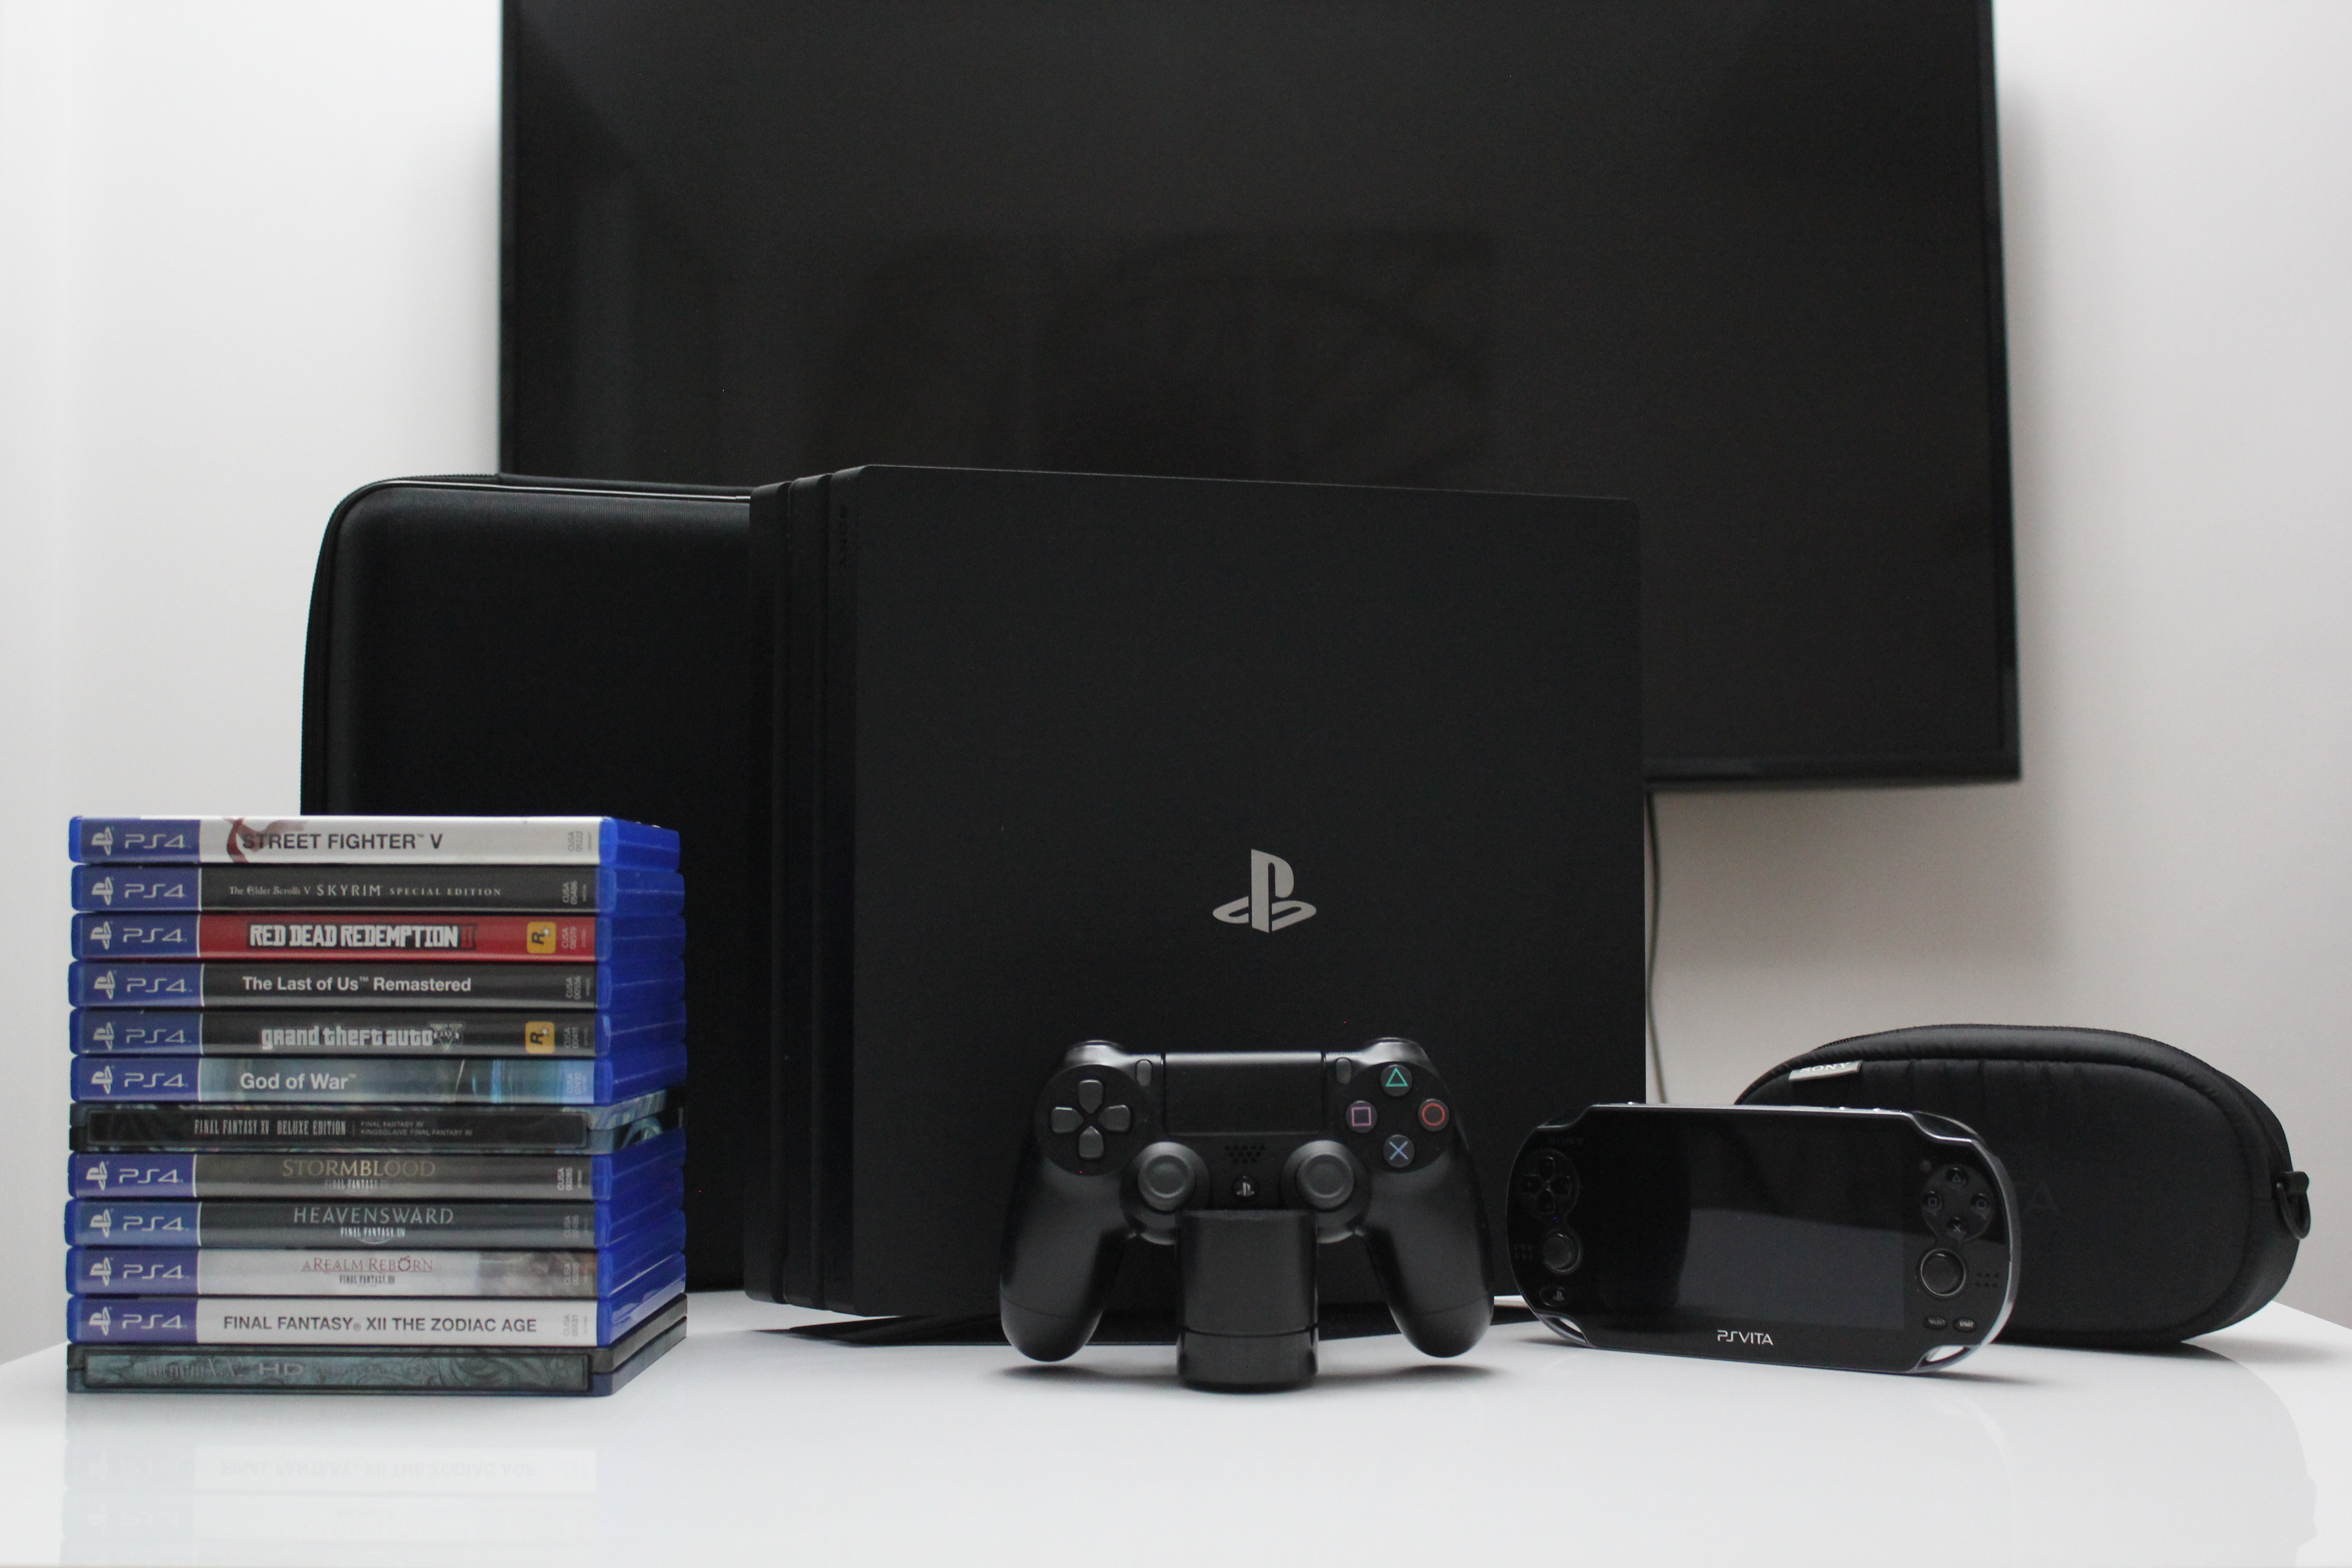 PS4 Pro 1 TB / PS Vita / PS4 games / accessories photo